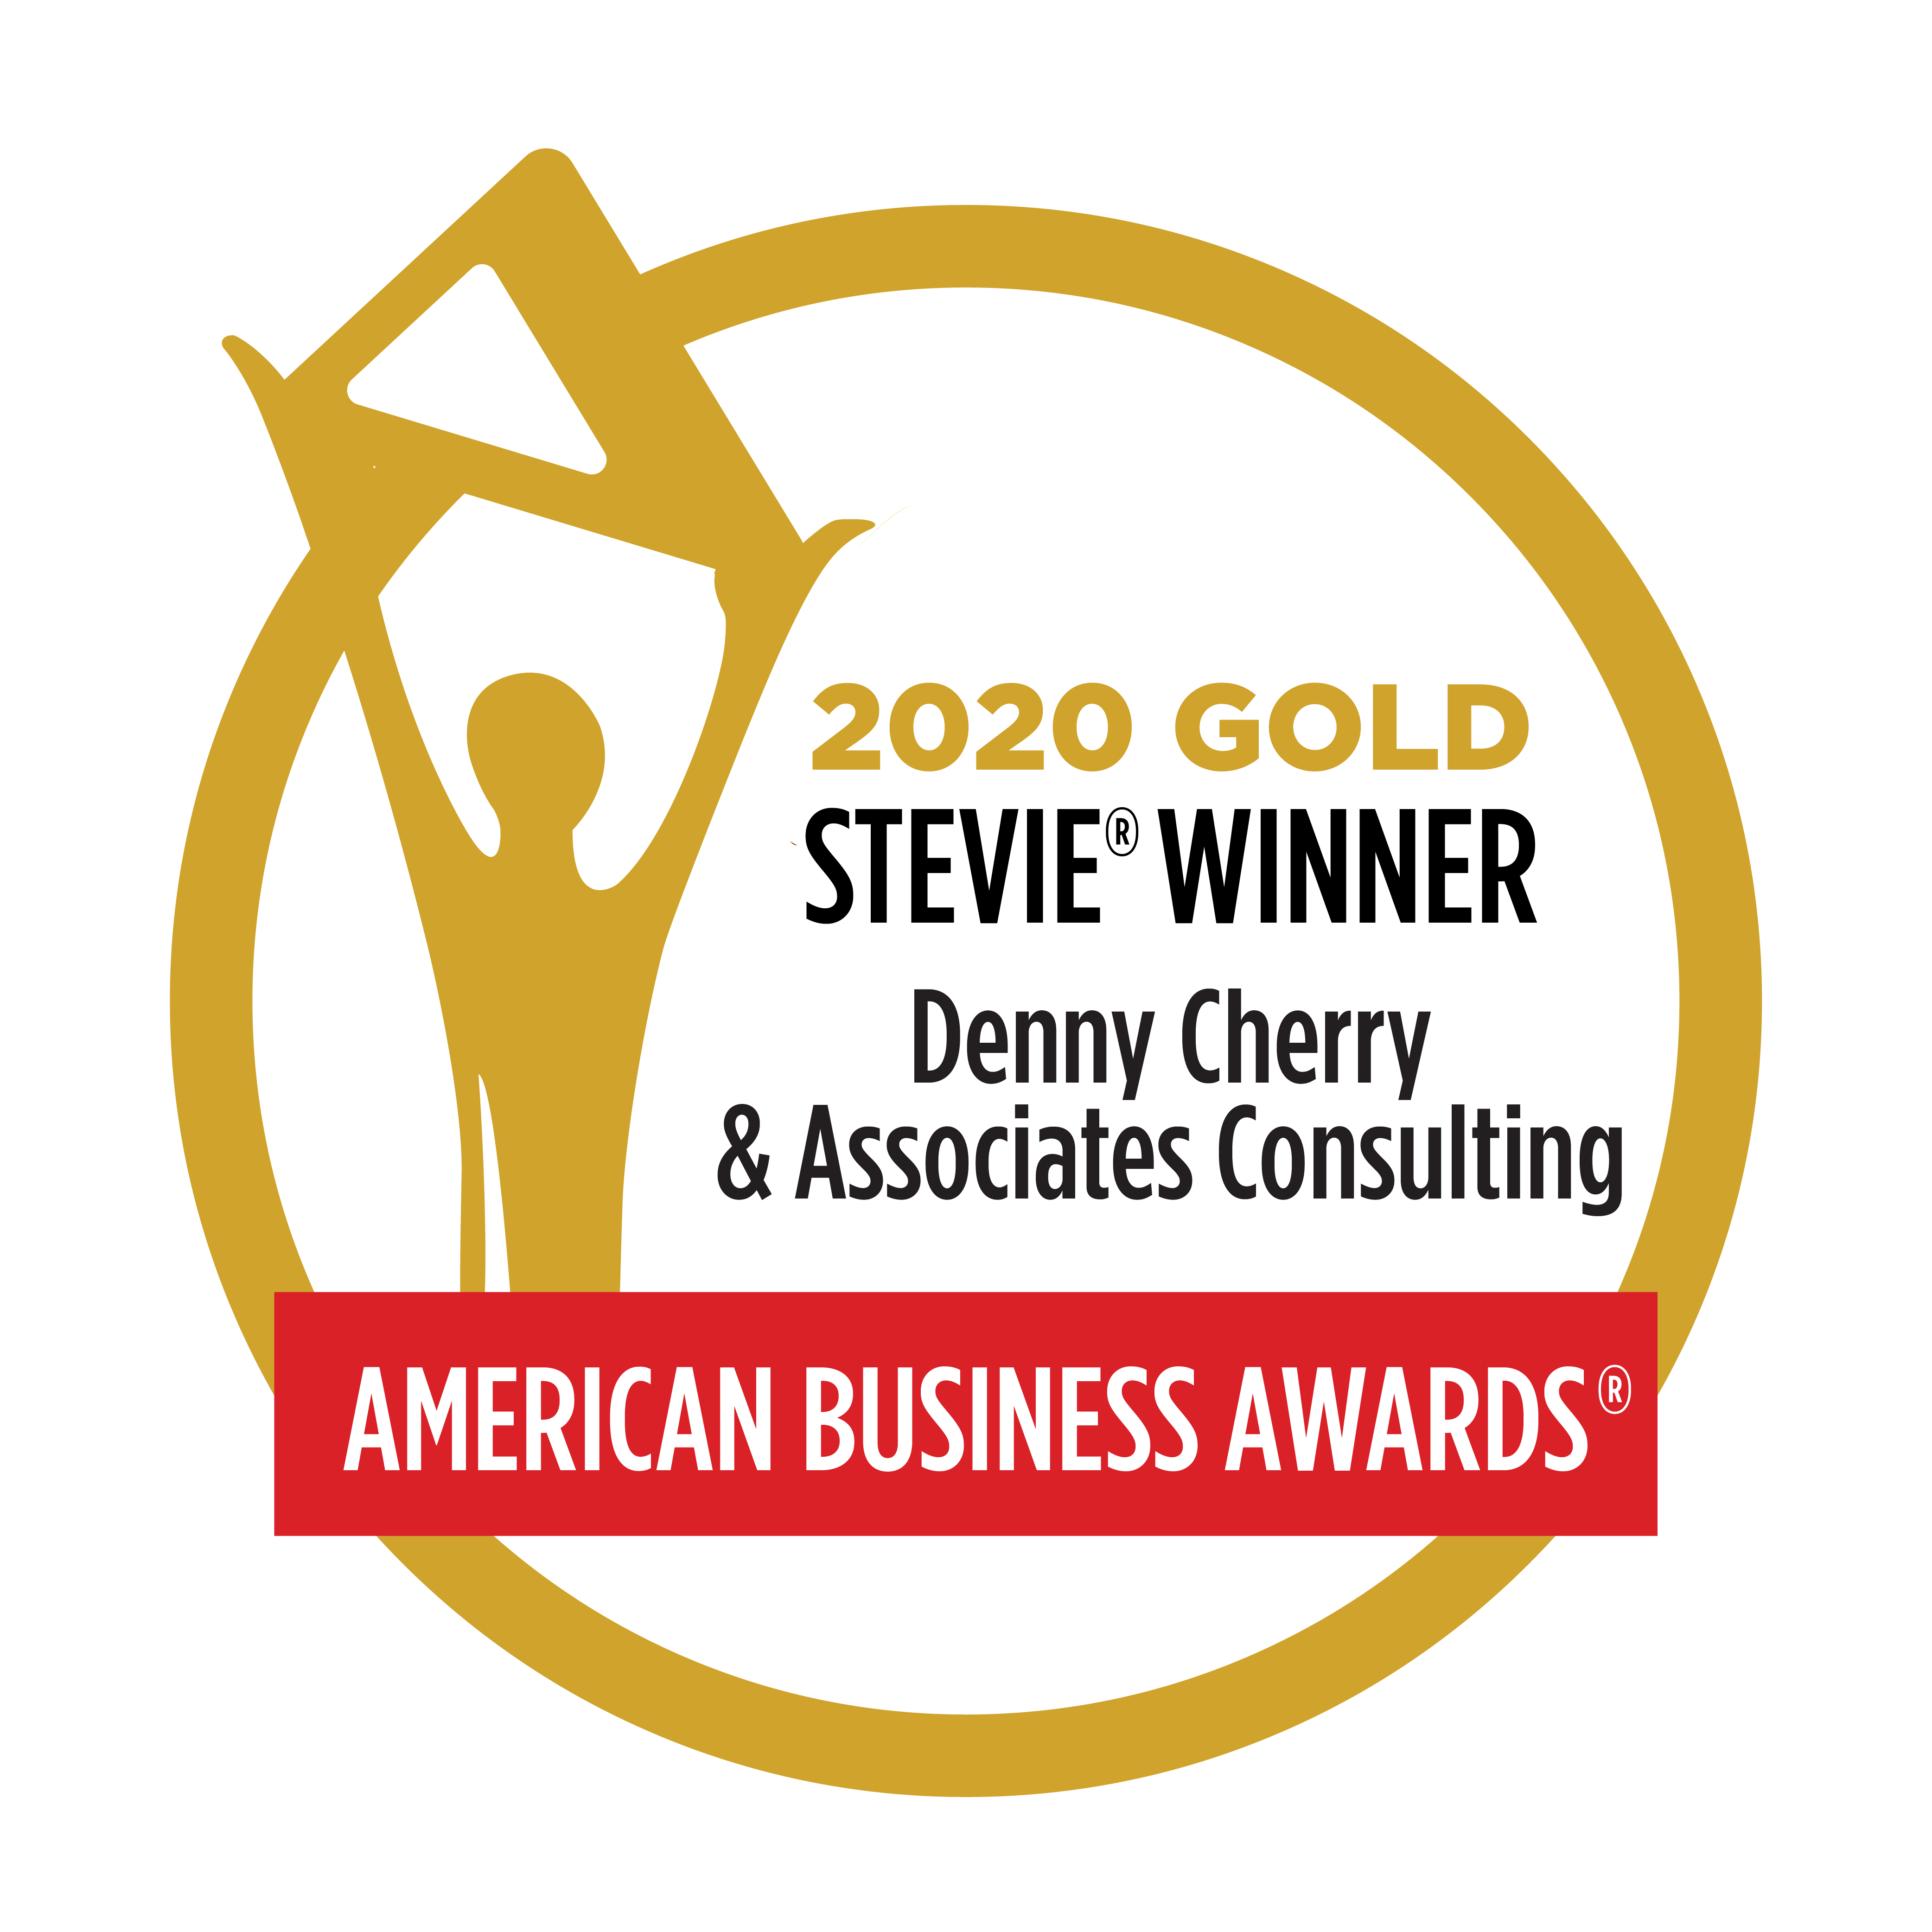 American Business Awards Gold Award